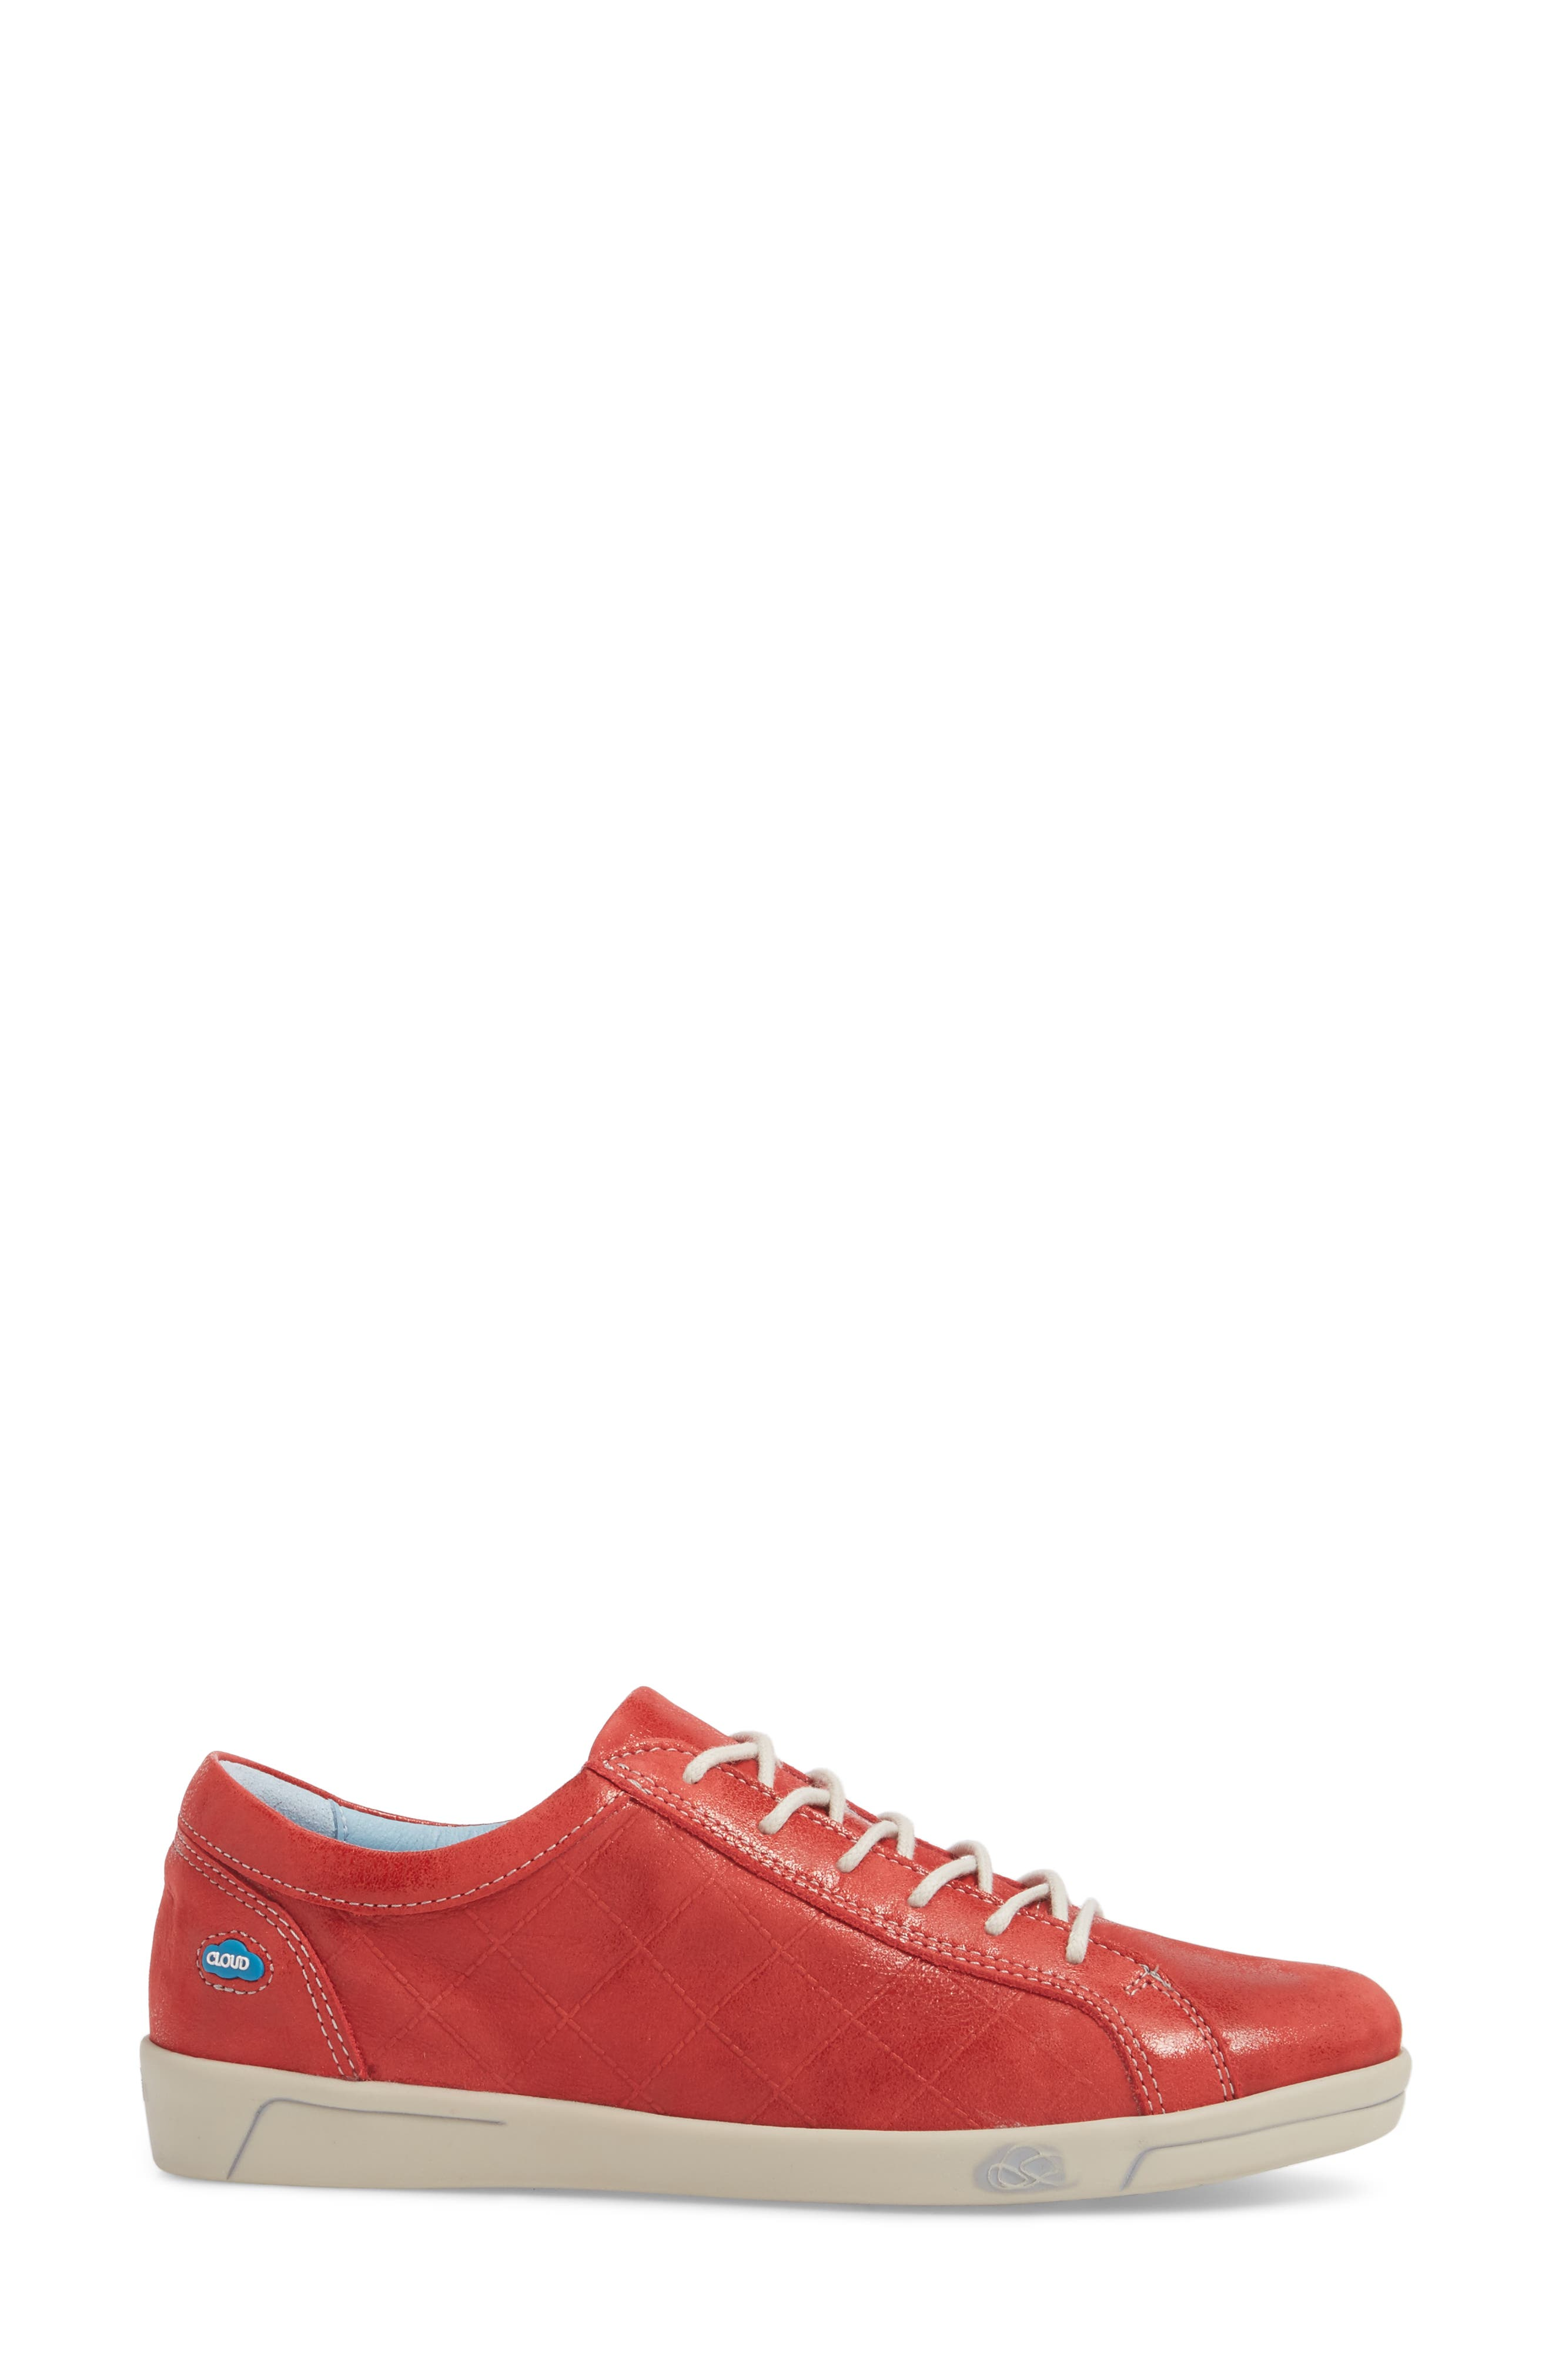 Alessia Sneaker,                             Alternate thumbnail 3, color,                             Red Stinger Leather